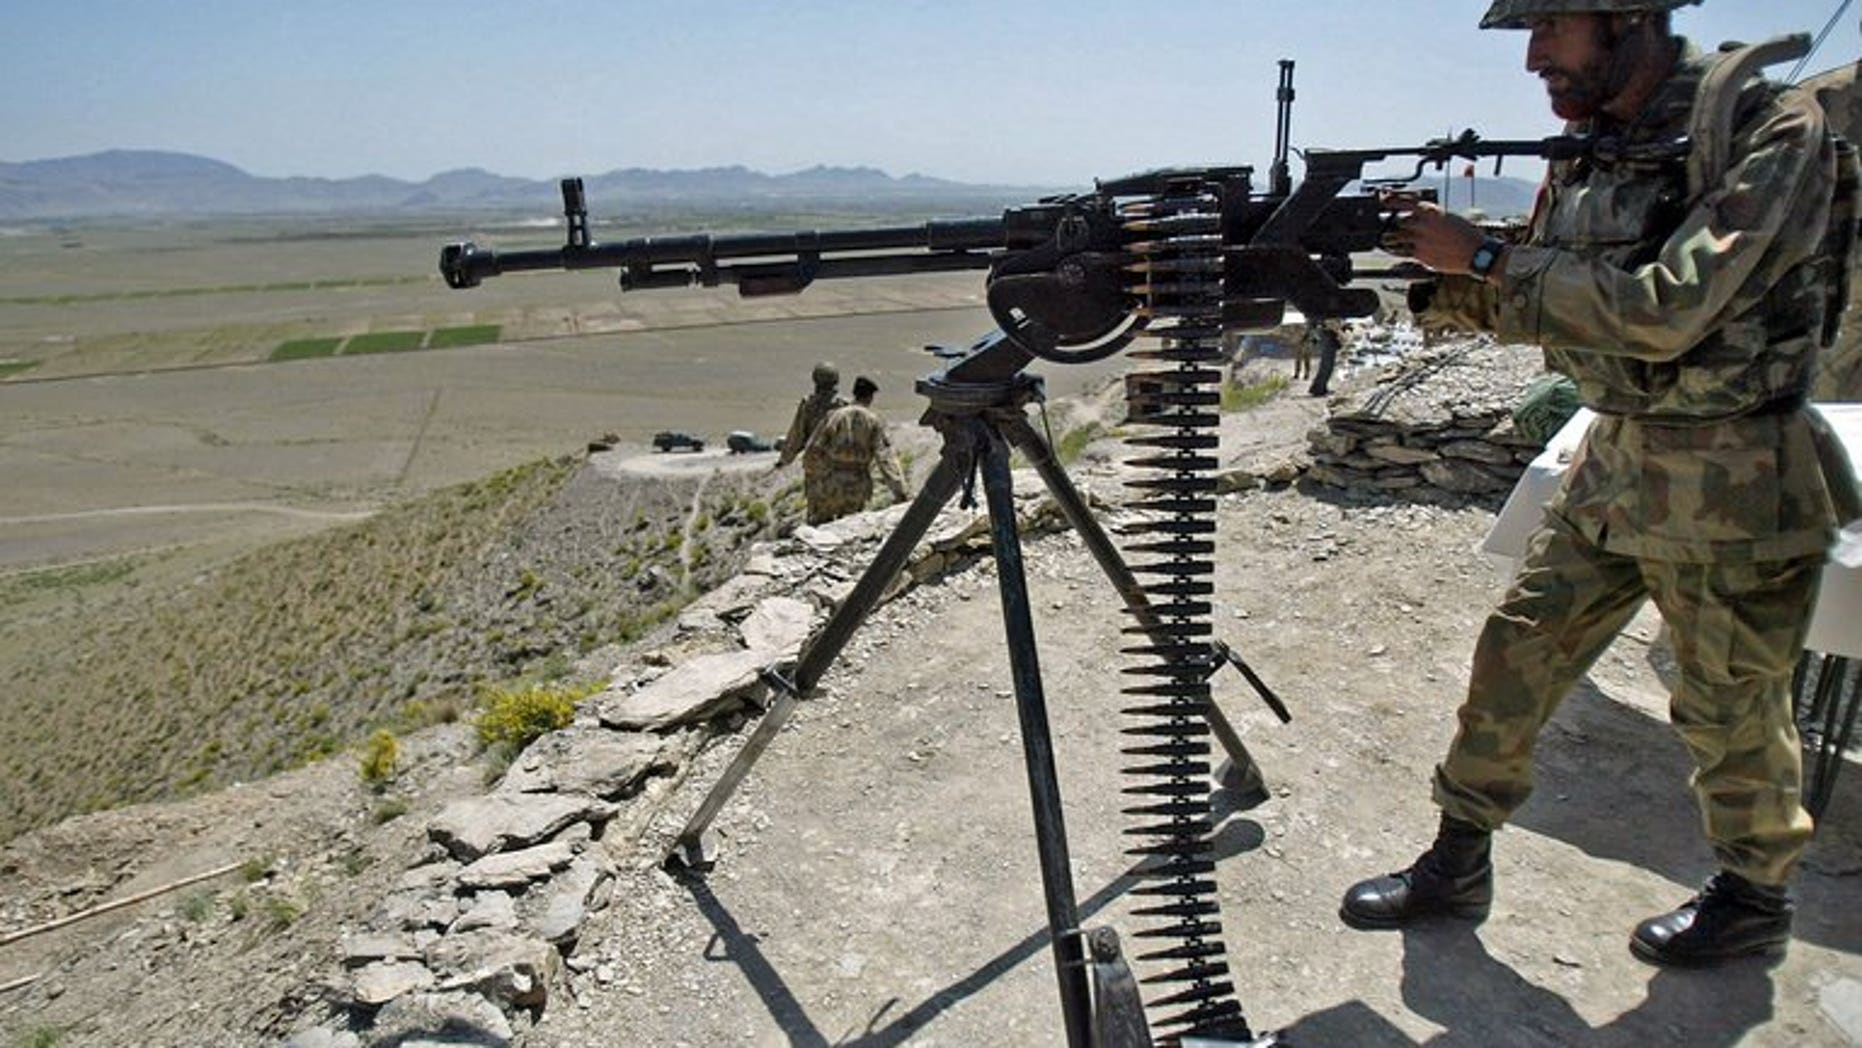 Pakistani soldiers take position at Sholam Post, a military checkpost overlooking Wana, the mountain-fringed capital of South Waziristan, on April 11, 2007. A militant commander who sheltered Al-Qaeda fighters was killed on Thursday by a roadside bomb along with four associates in Sholam area.